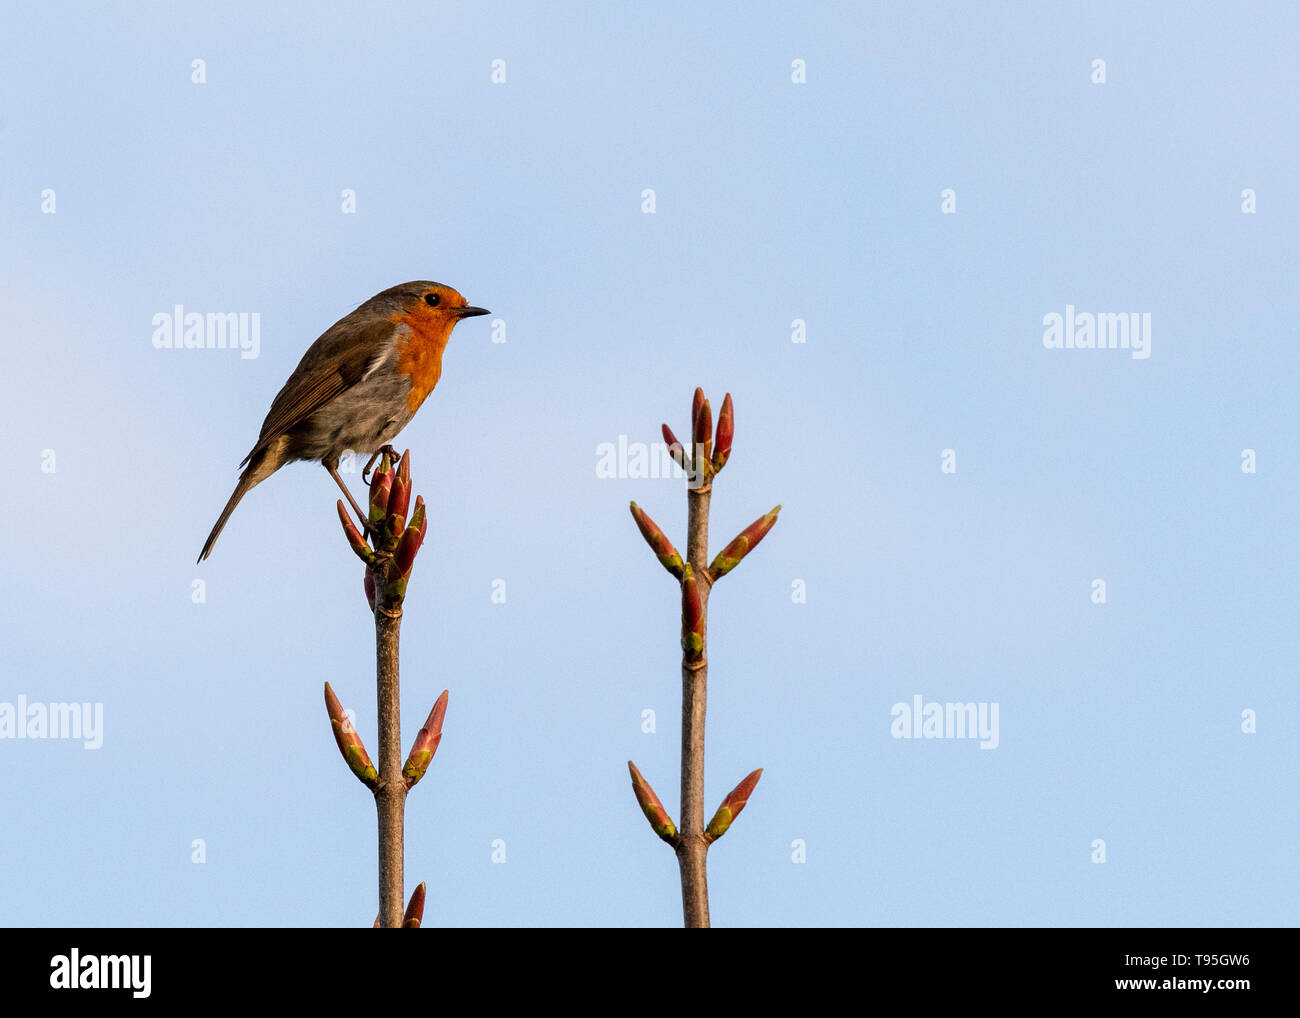 Robin on tip of a branch - Stock Image